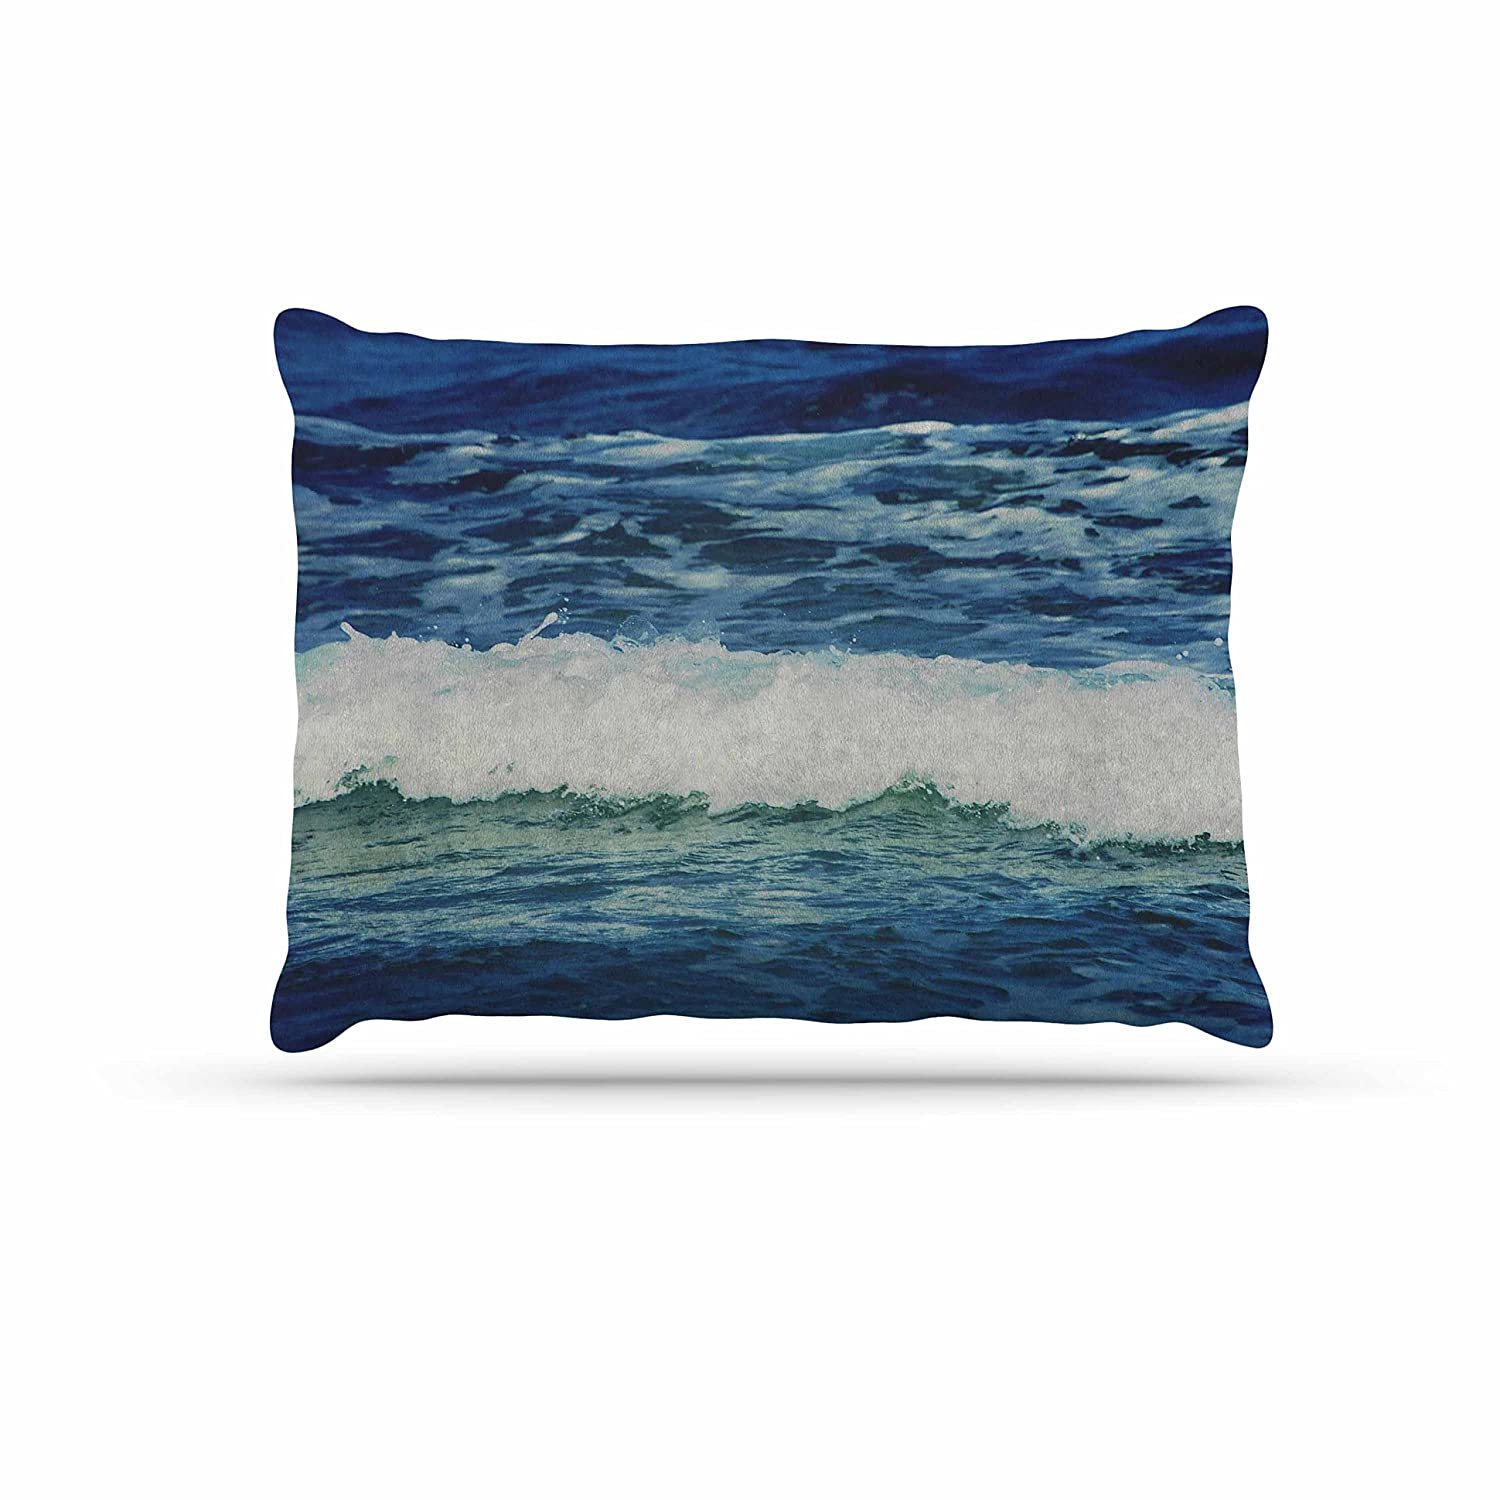 KESS InHouse Chelsea Victoria Two If by Sea Nautical Photography Dog Bed, 50  x 40